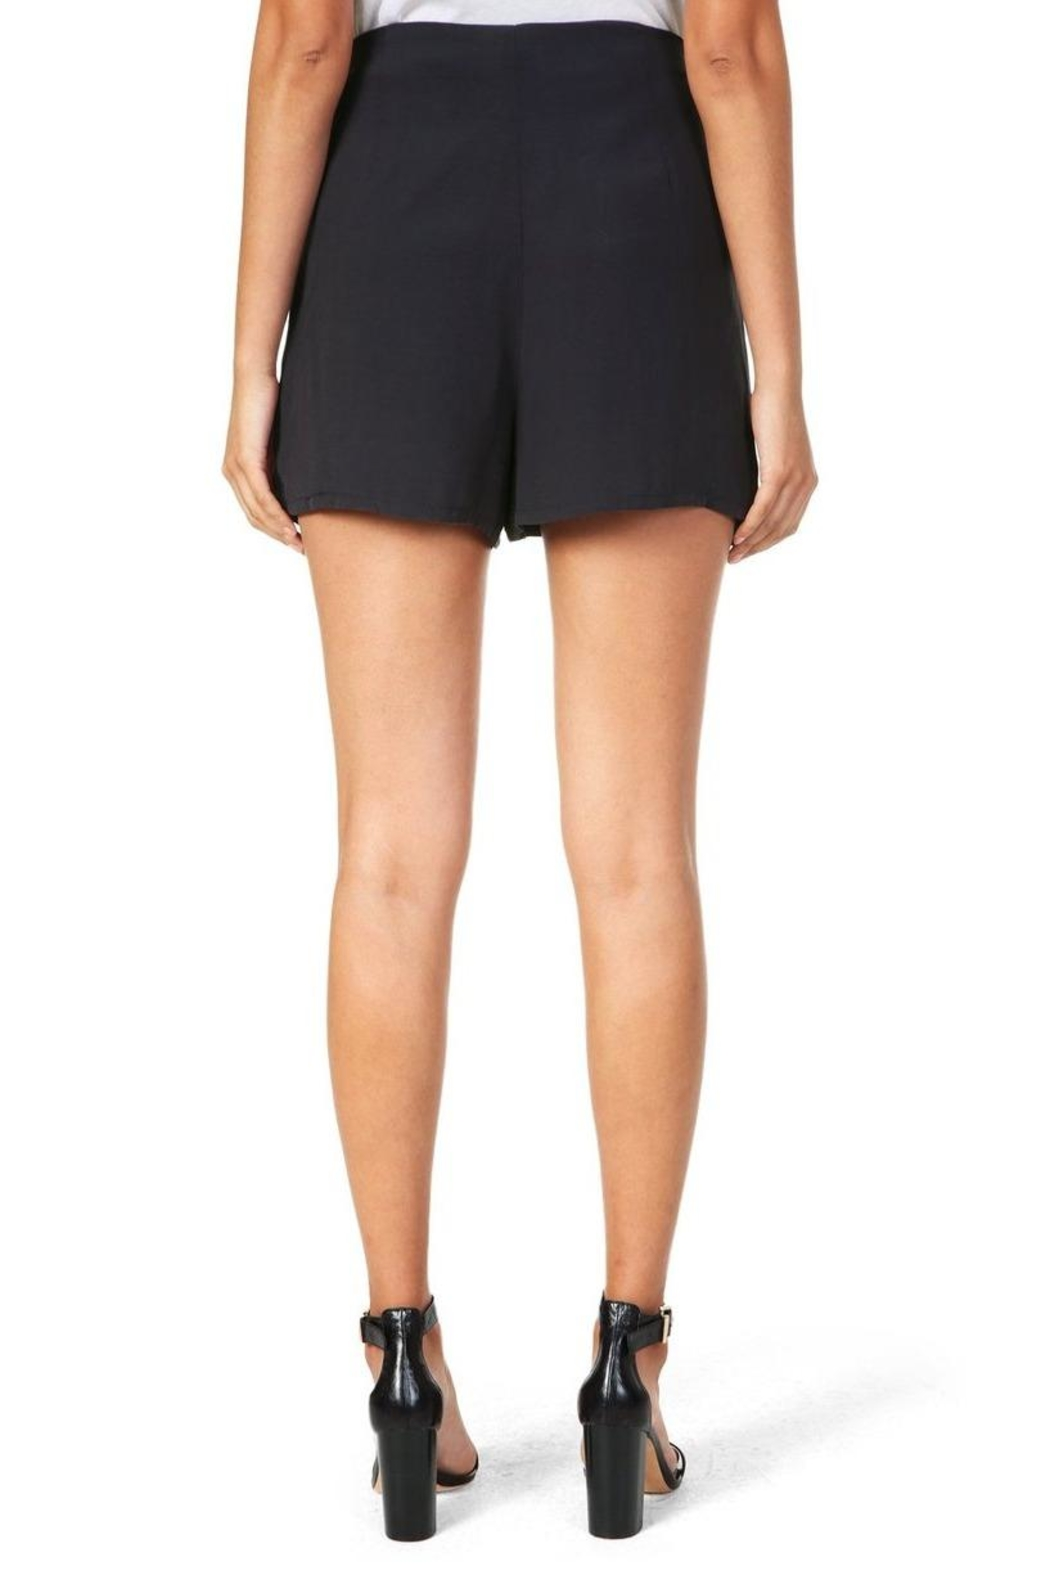 Cupcakes & Cashmere Raven Midnight Shorts - Side Cropped Image